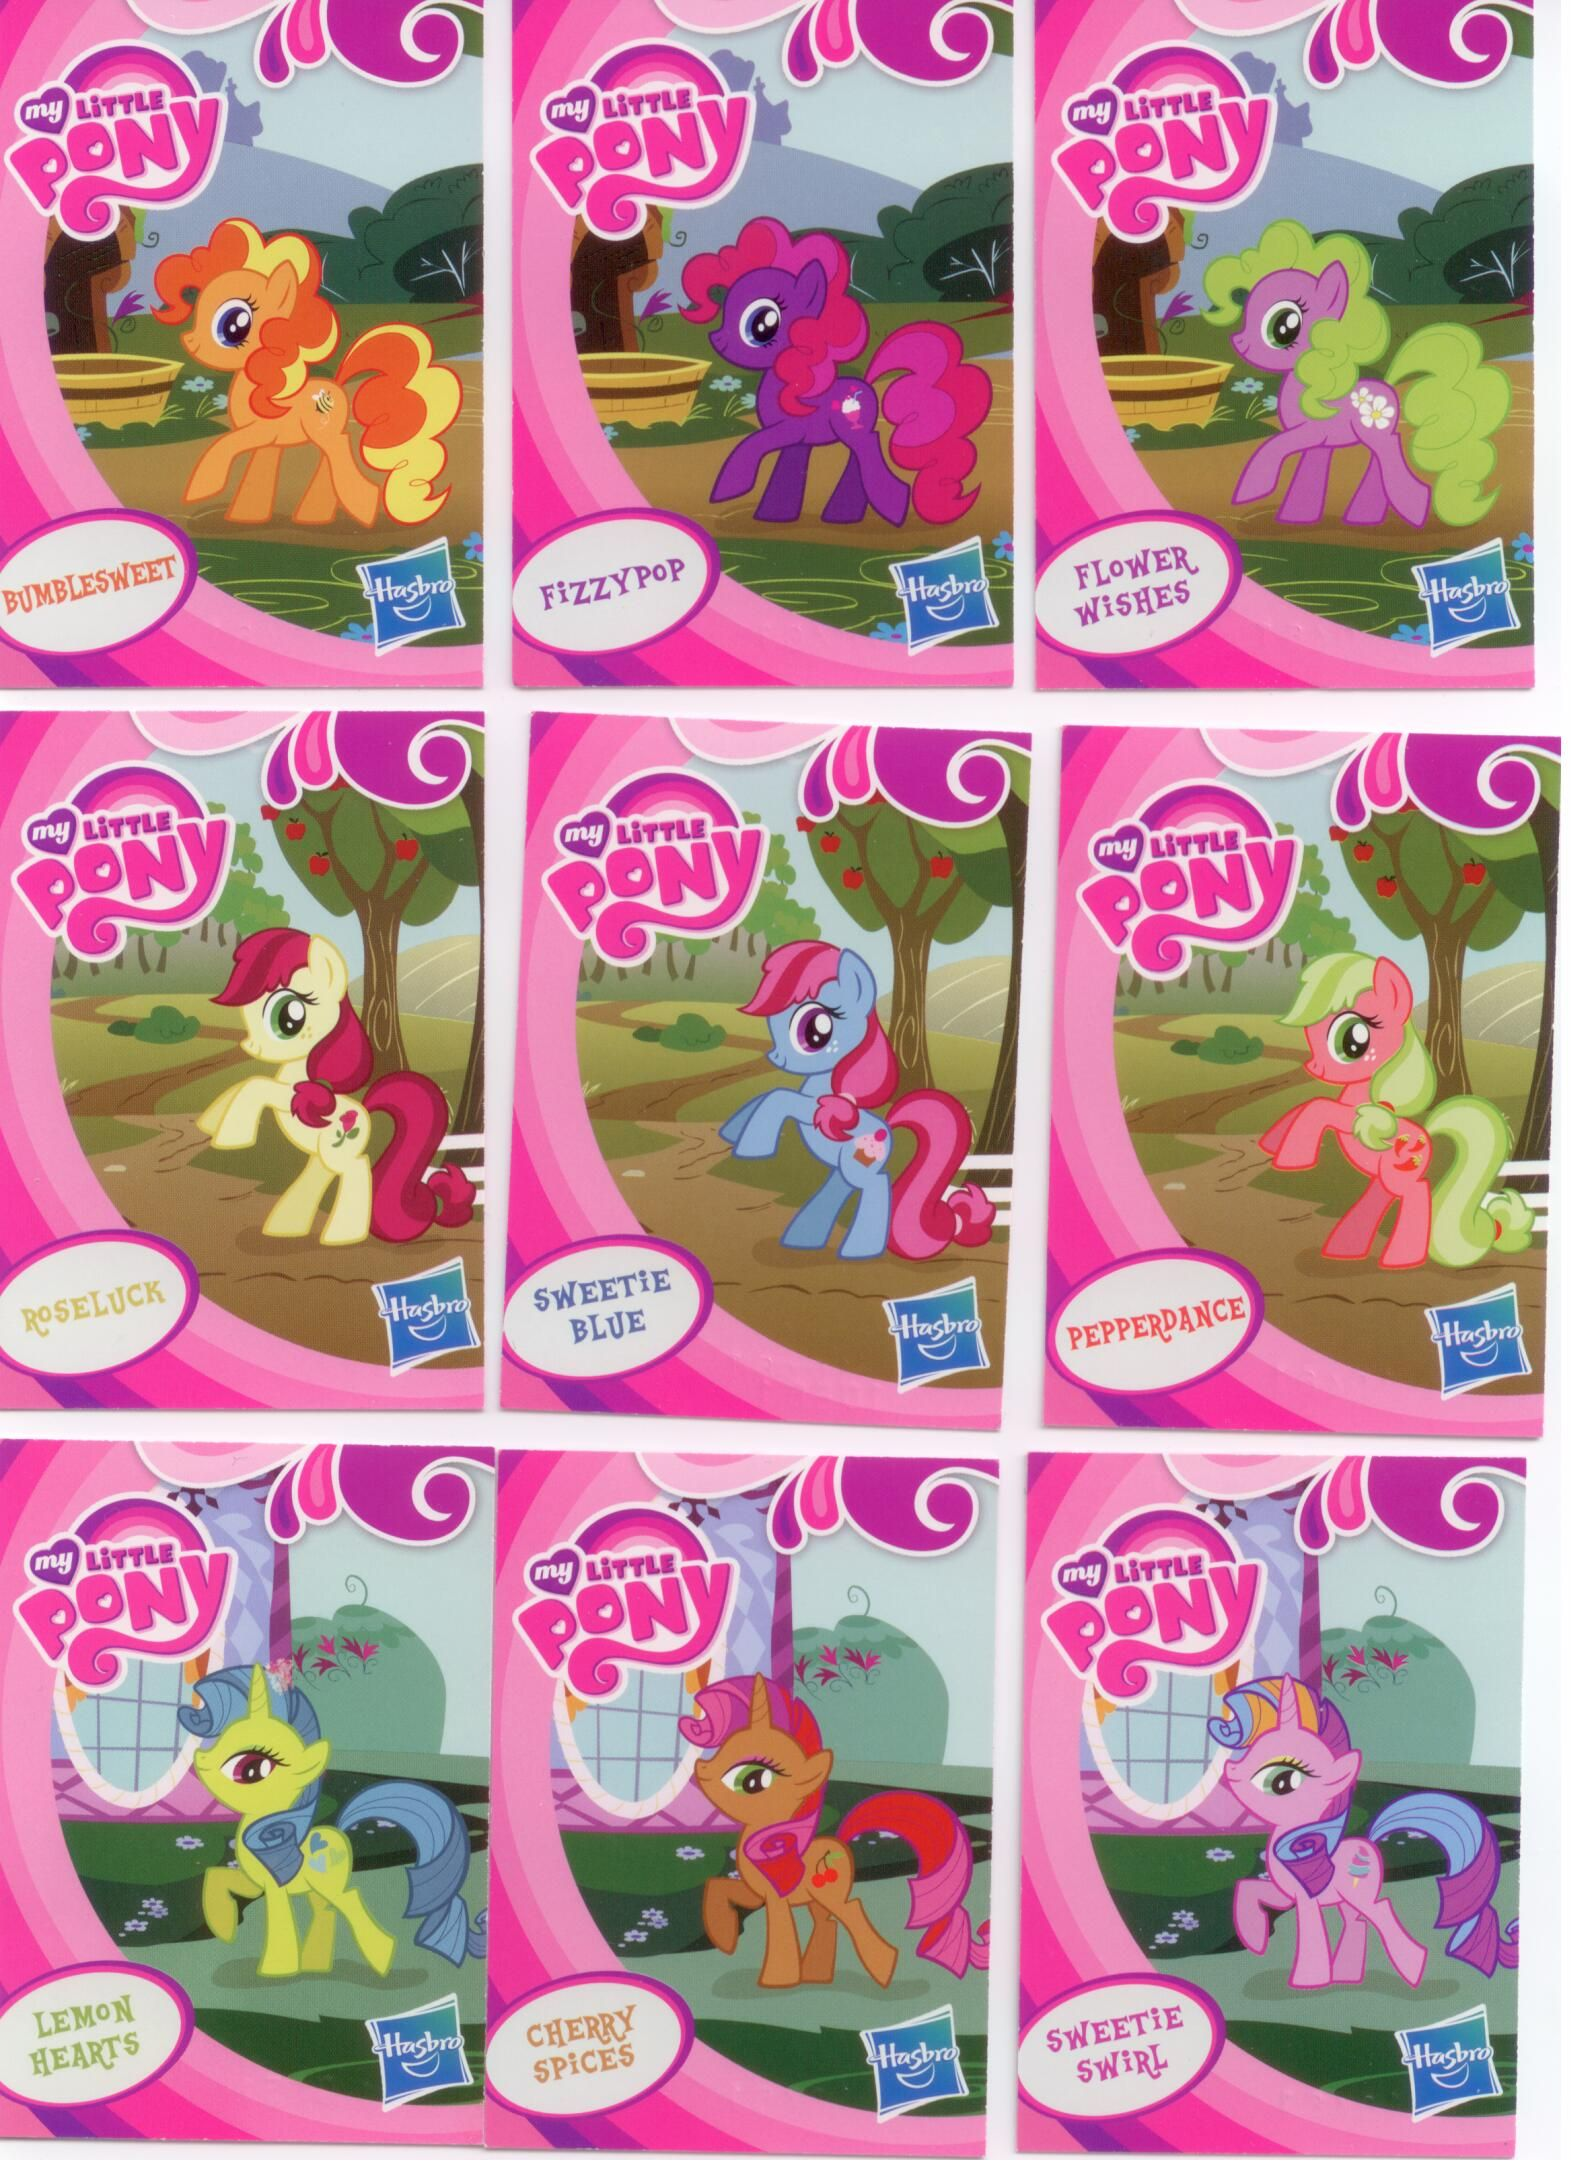 EU wave 1 mystery packs scans - Bumblesweet  Fizzypop  Flower Wishes    Flower Wishes Mlp